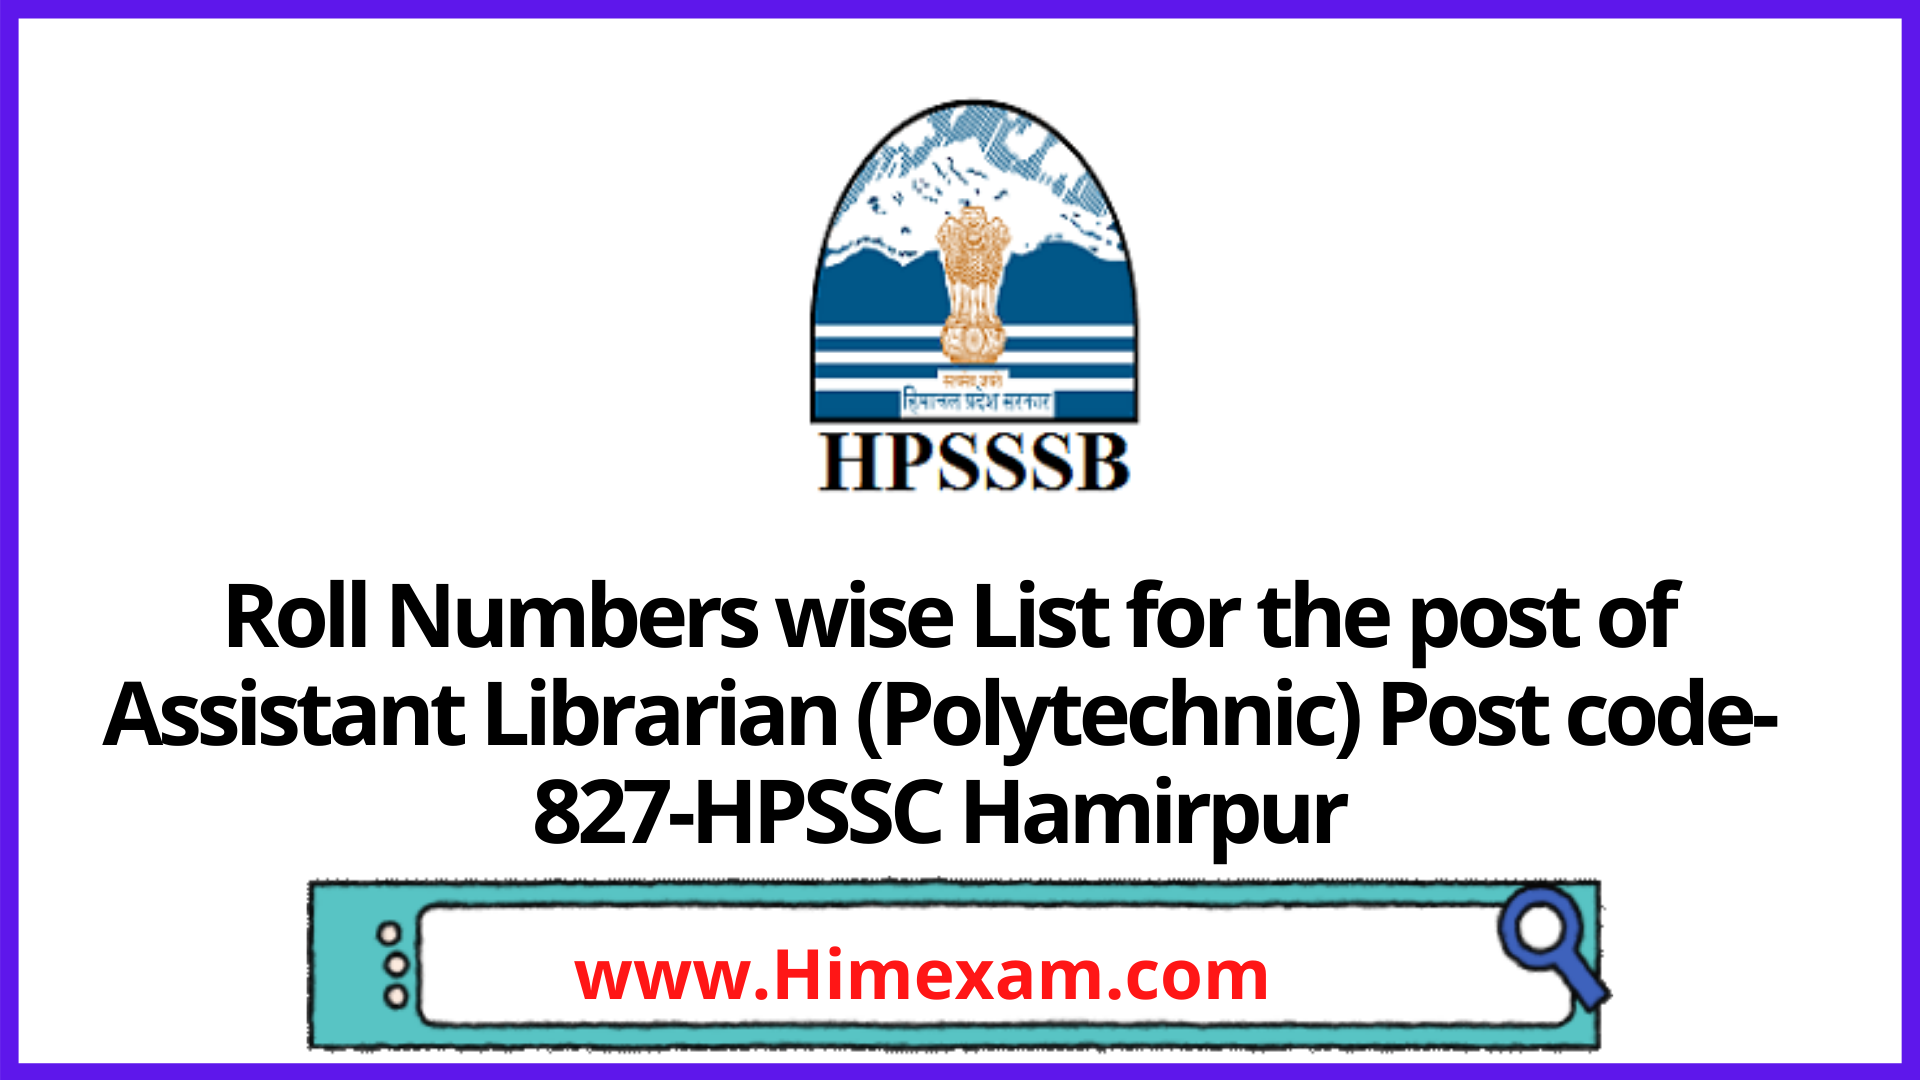 Roll Numbers wise List for the post of Assistant Librarian (Polytechnic) Post code-827-HPSSC Hamirpu